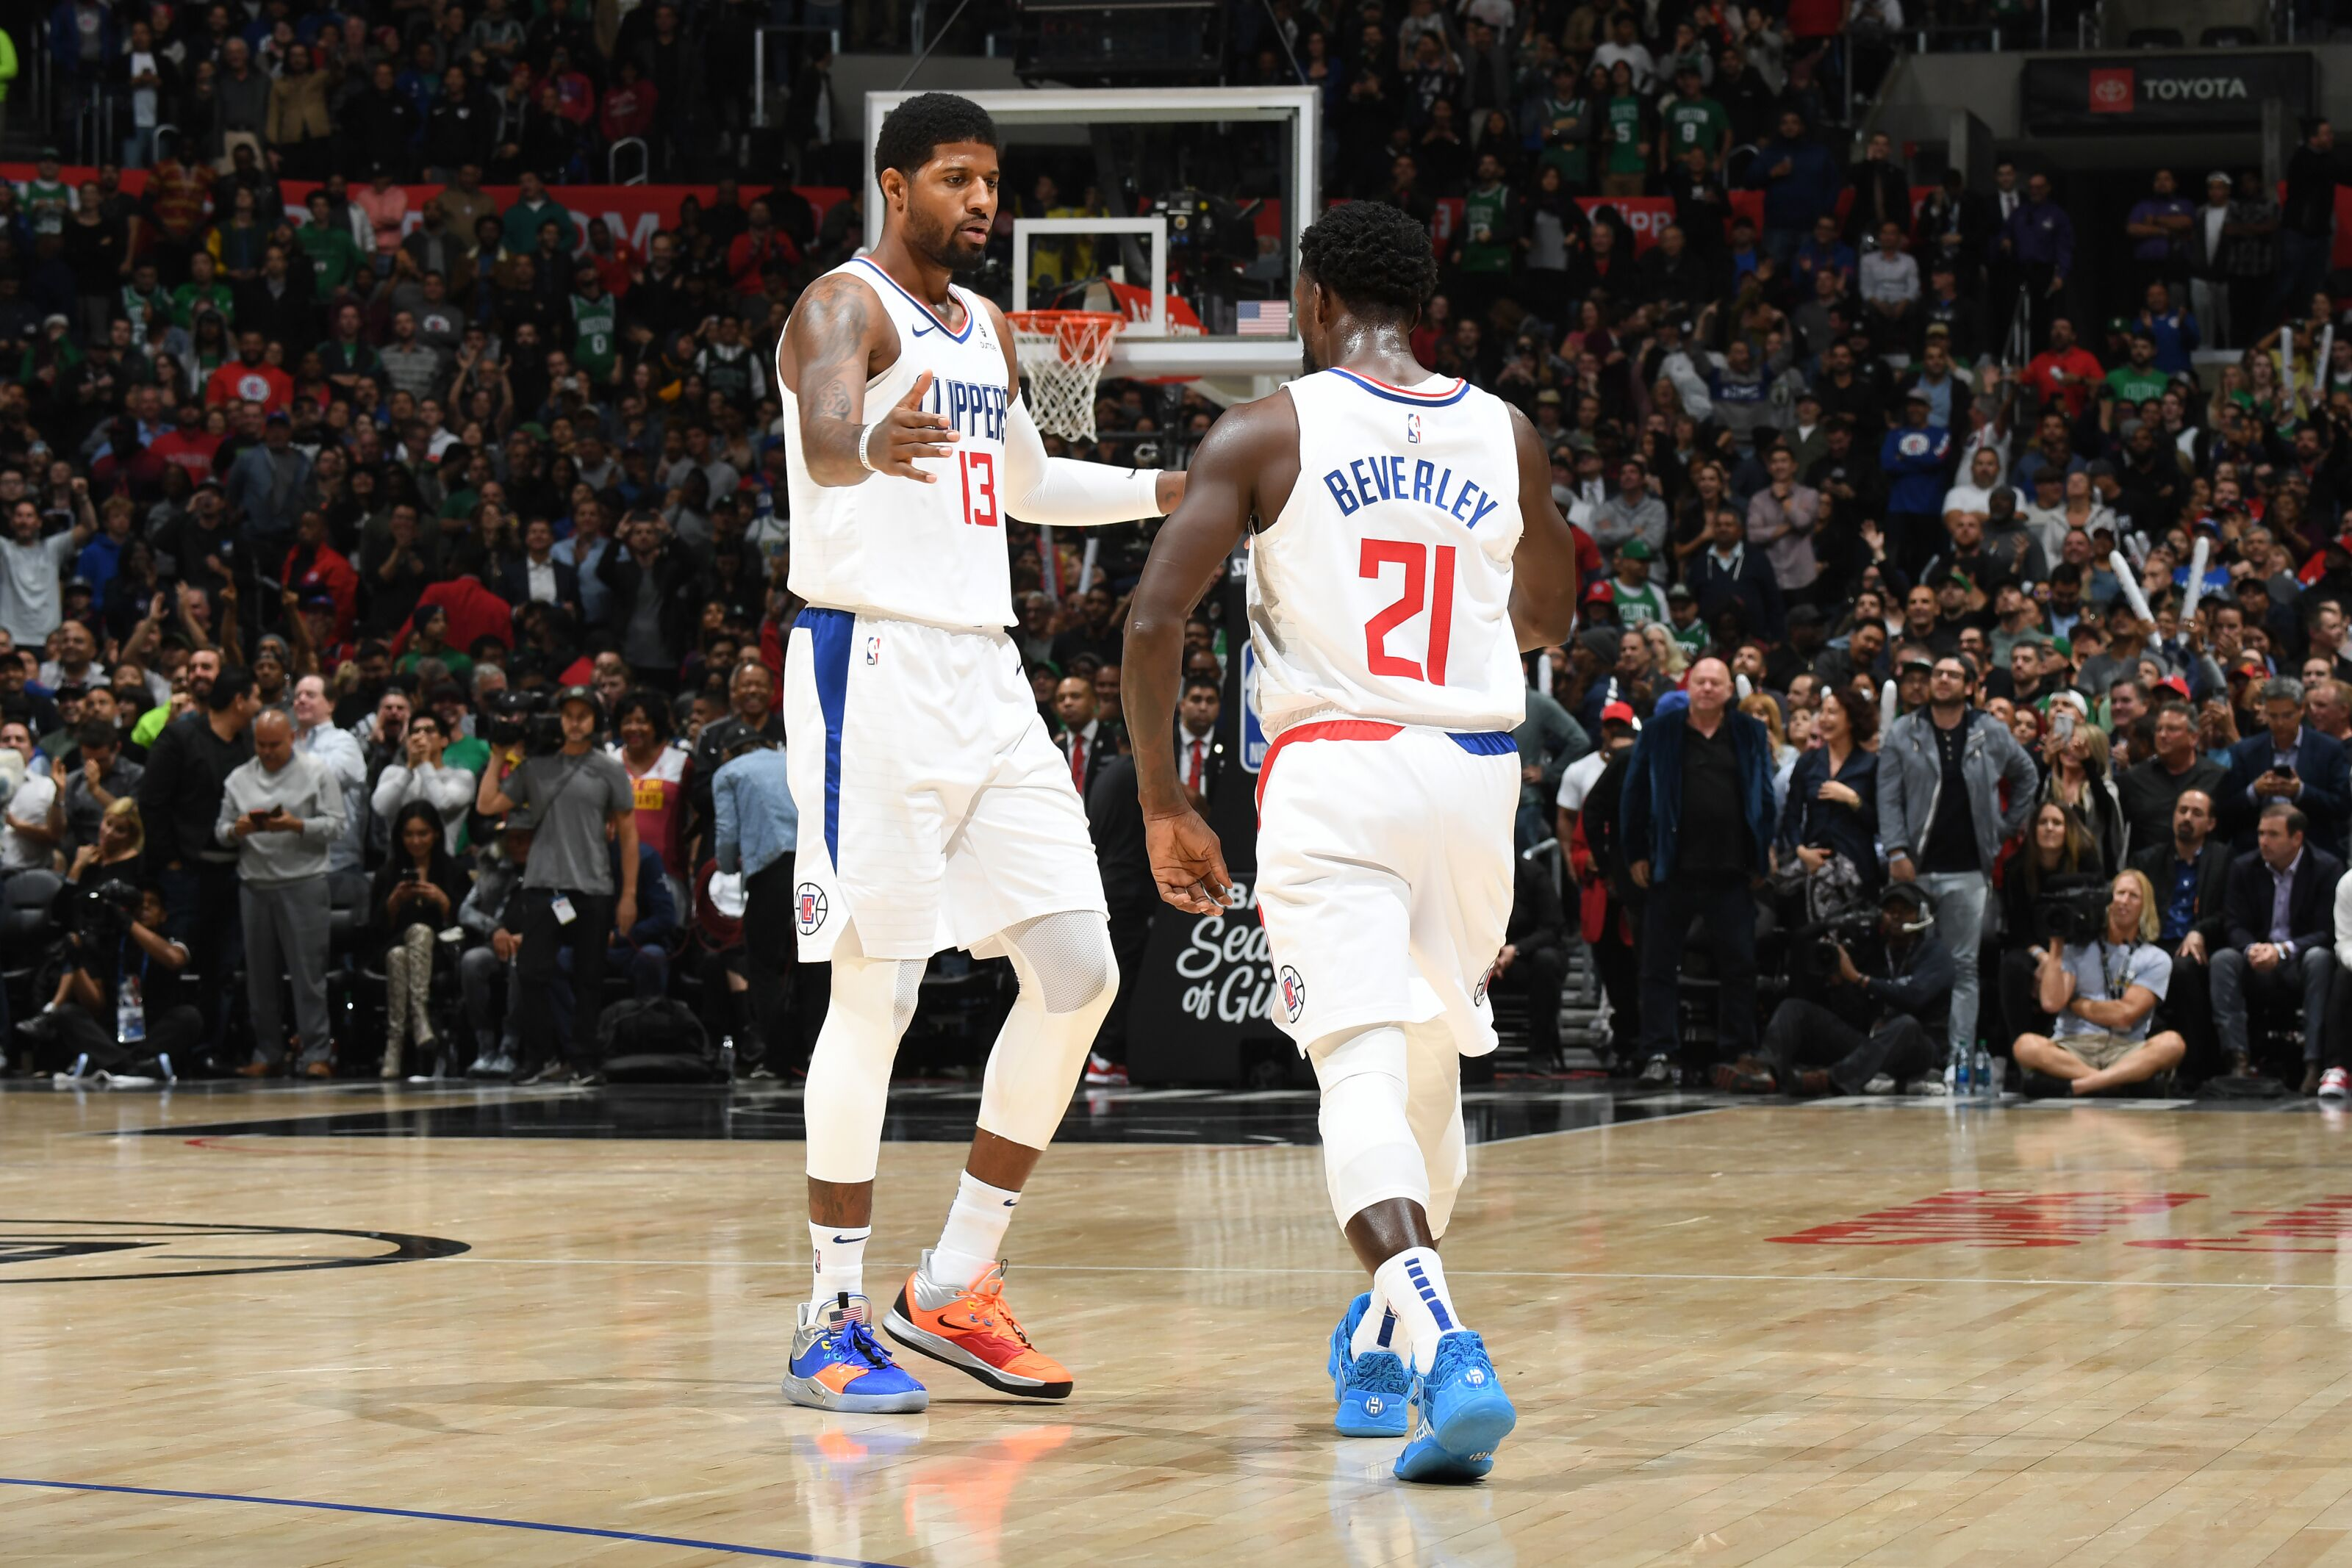 A bromance is building on the Clippers between Patrick Beverley & Paul George